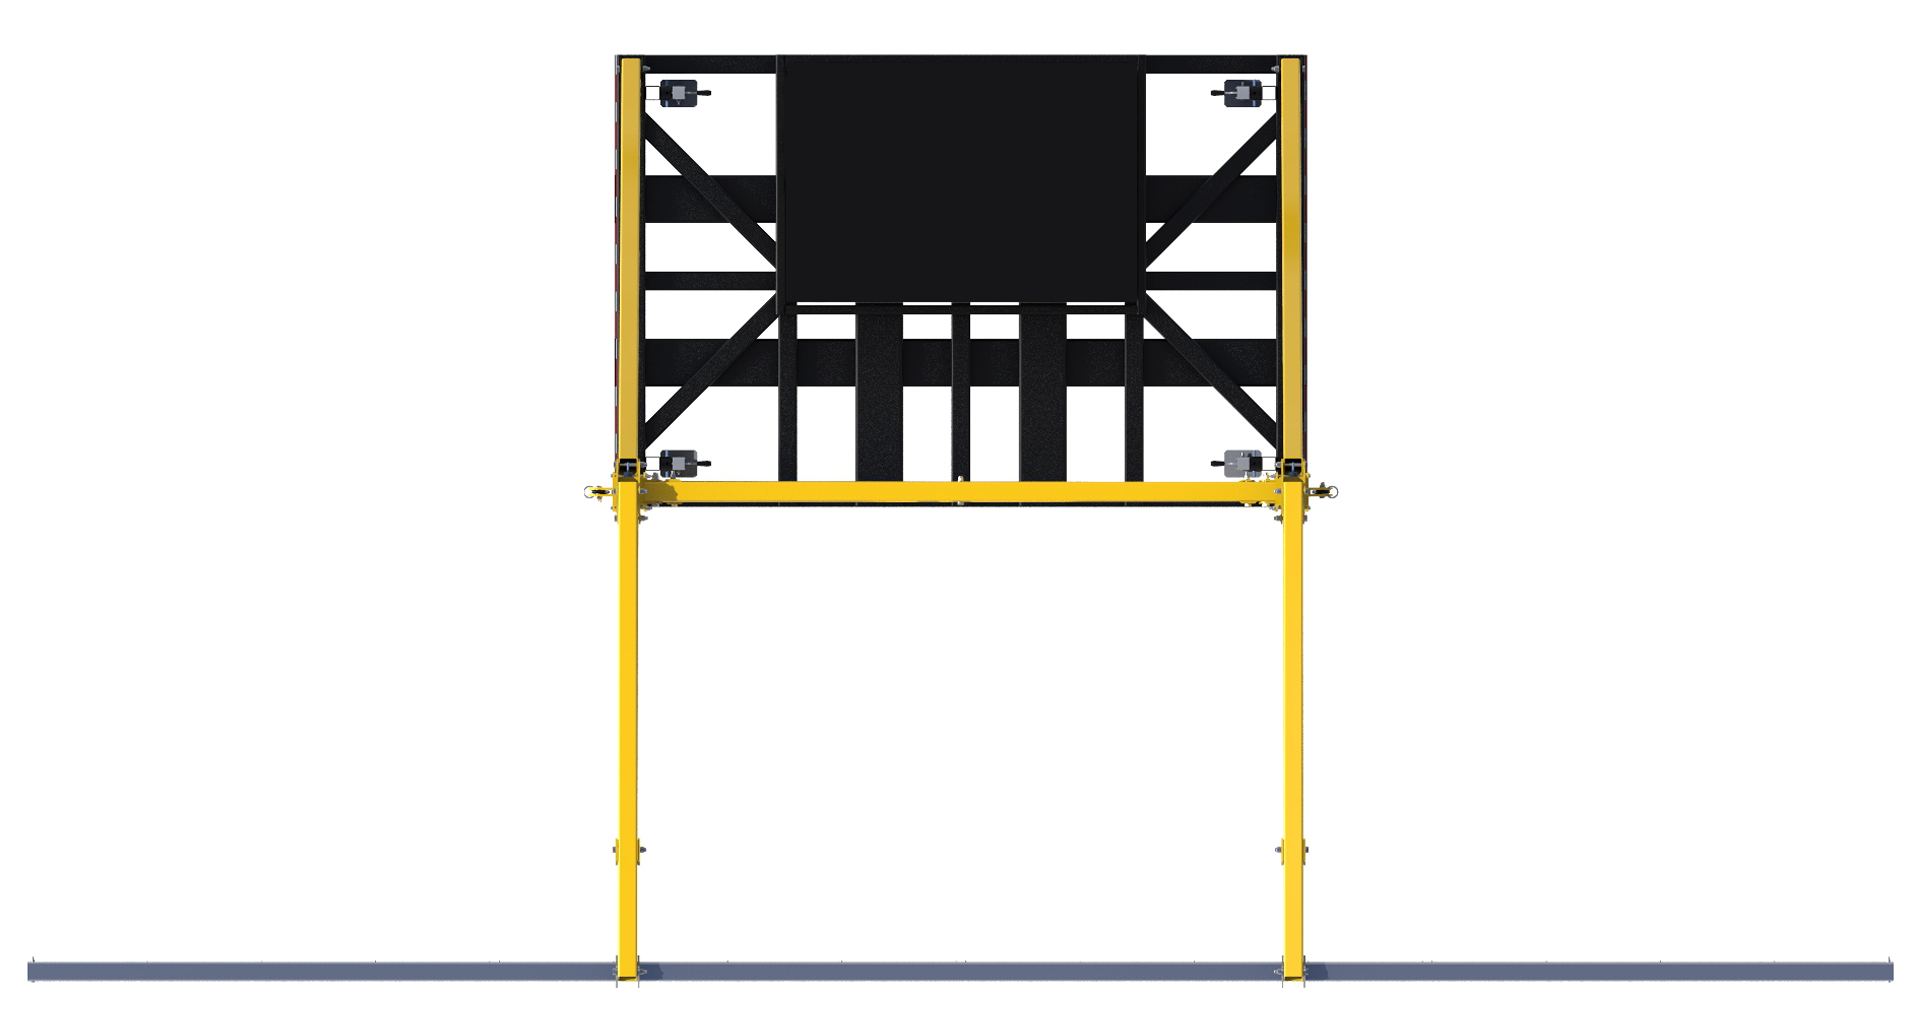 FlexiGuard Counterweighted Overhead Rail Fall Arrest System,  No Counterweights, Top View